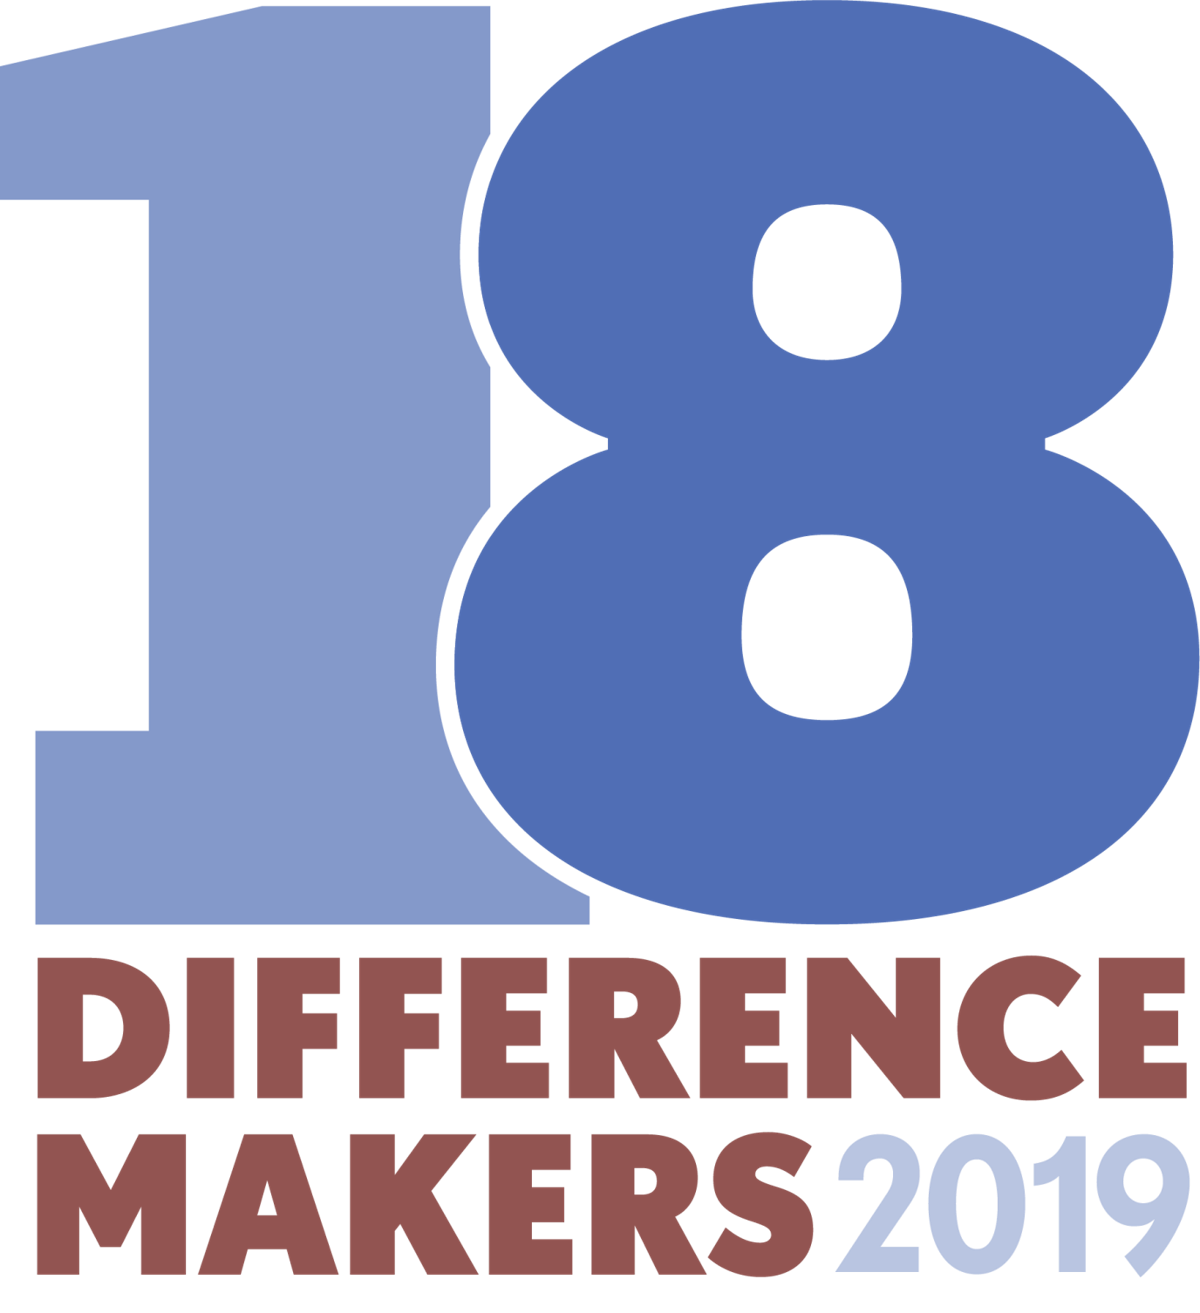 18 Difference Makers 2019